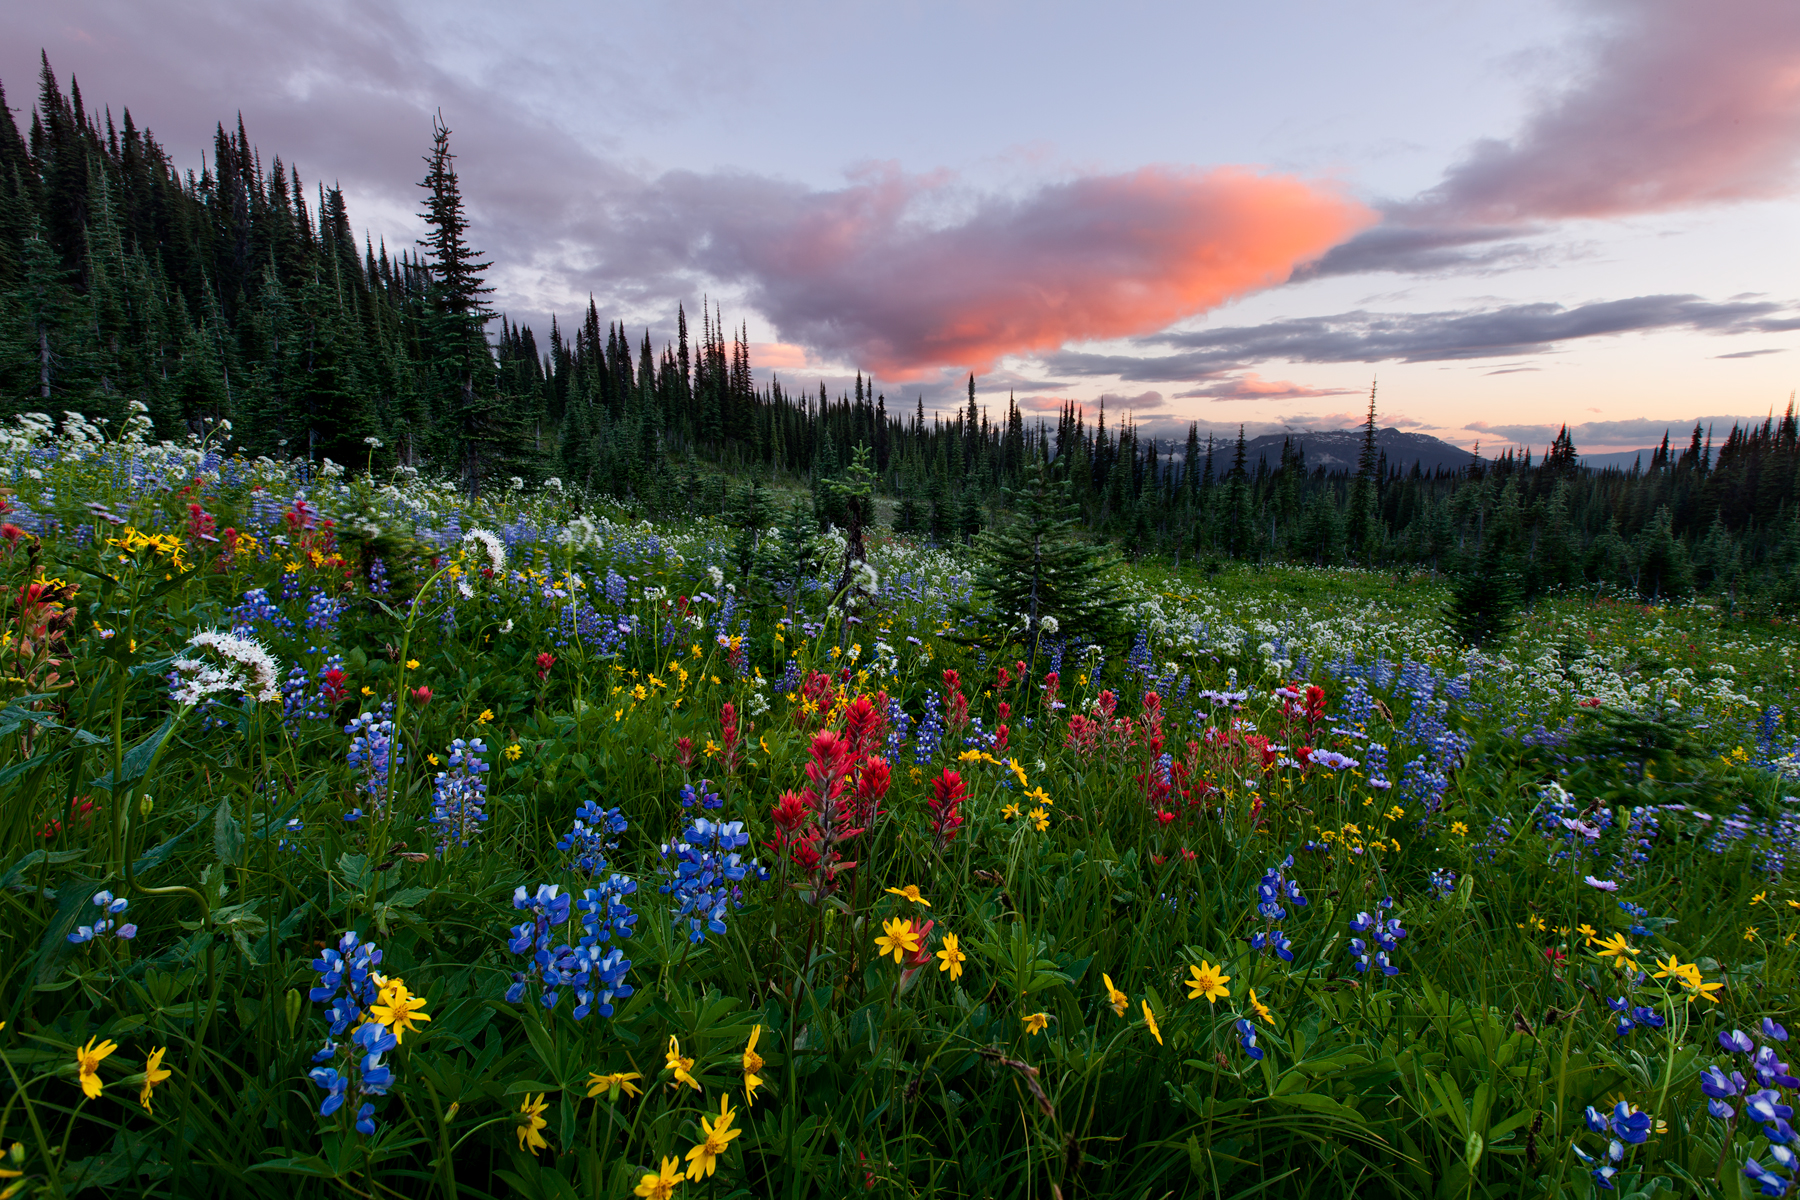 Wildflowers in Revelstoke National Park, B.C, Canada.  This image is a blend of multiple exposures.  Image ©Connor Stefanison